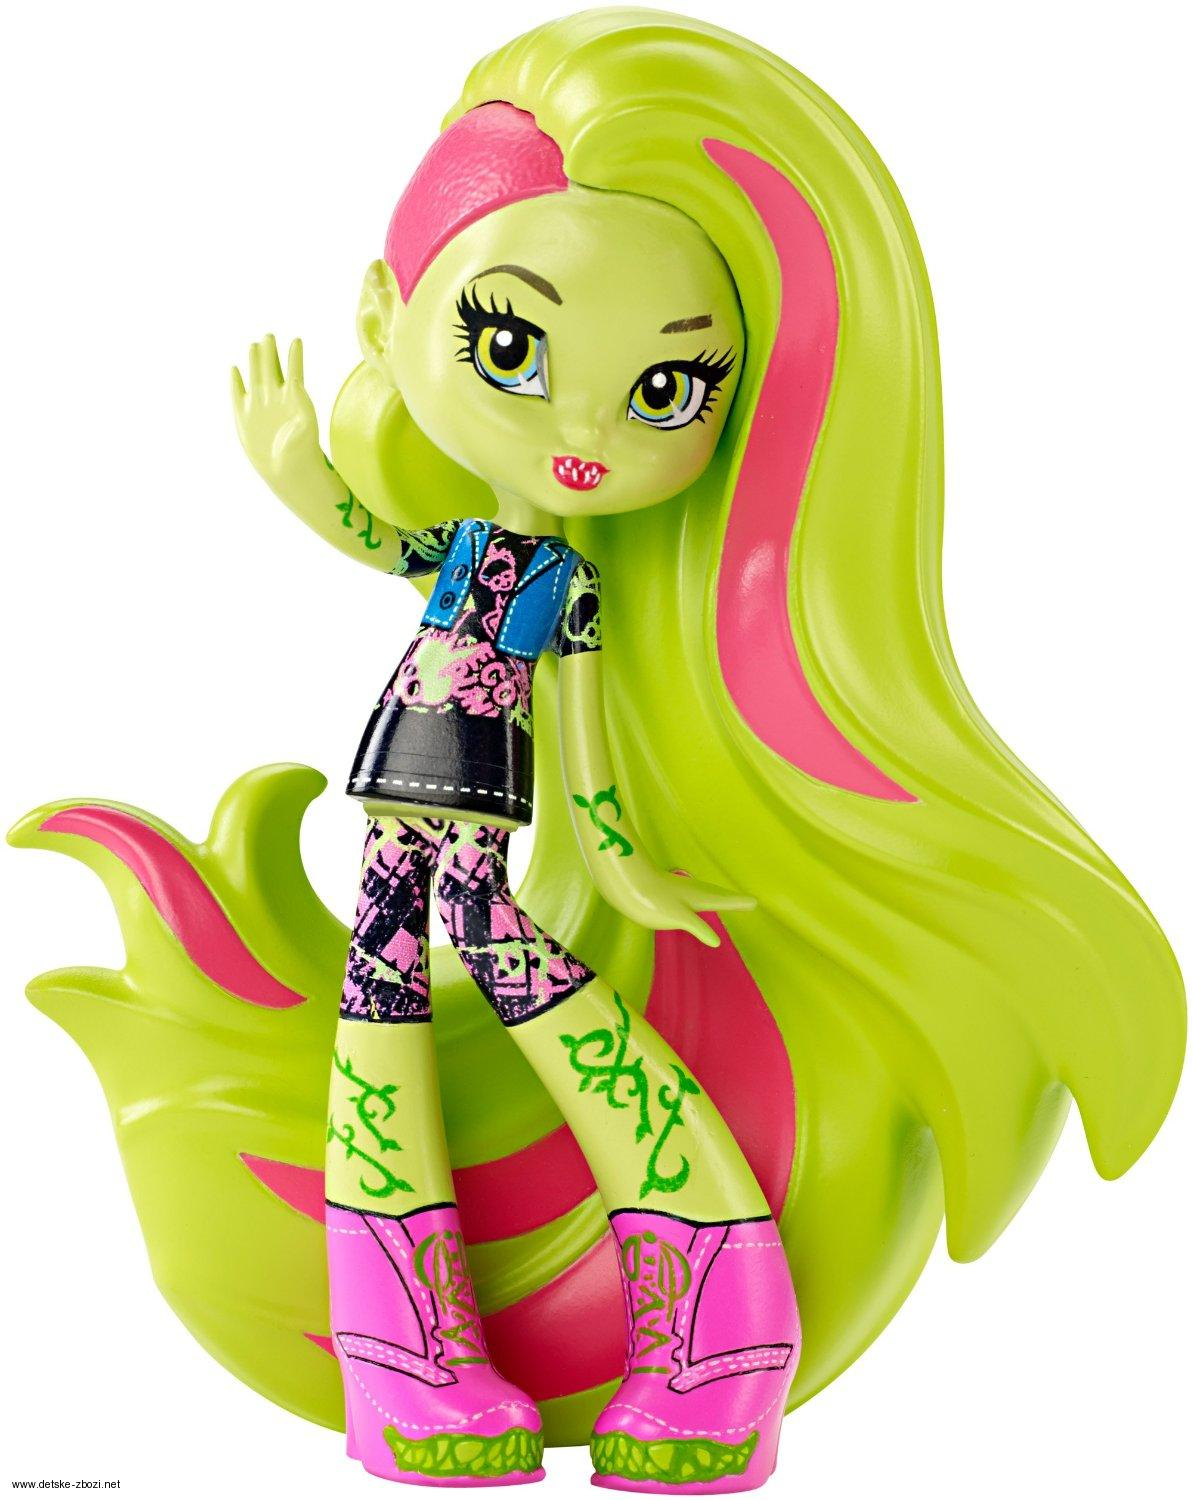 Mattel Monster High Venus Mc FlyTrap vinylová panenka 11 cm